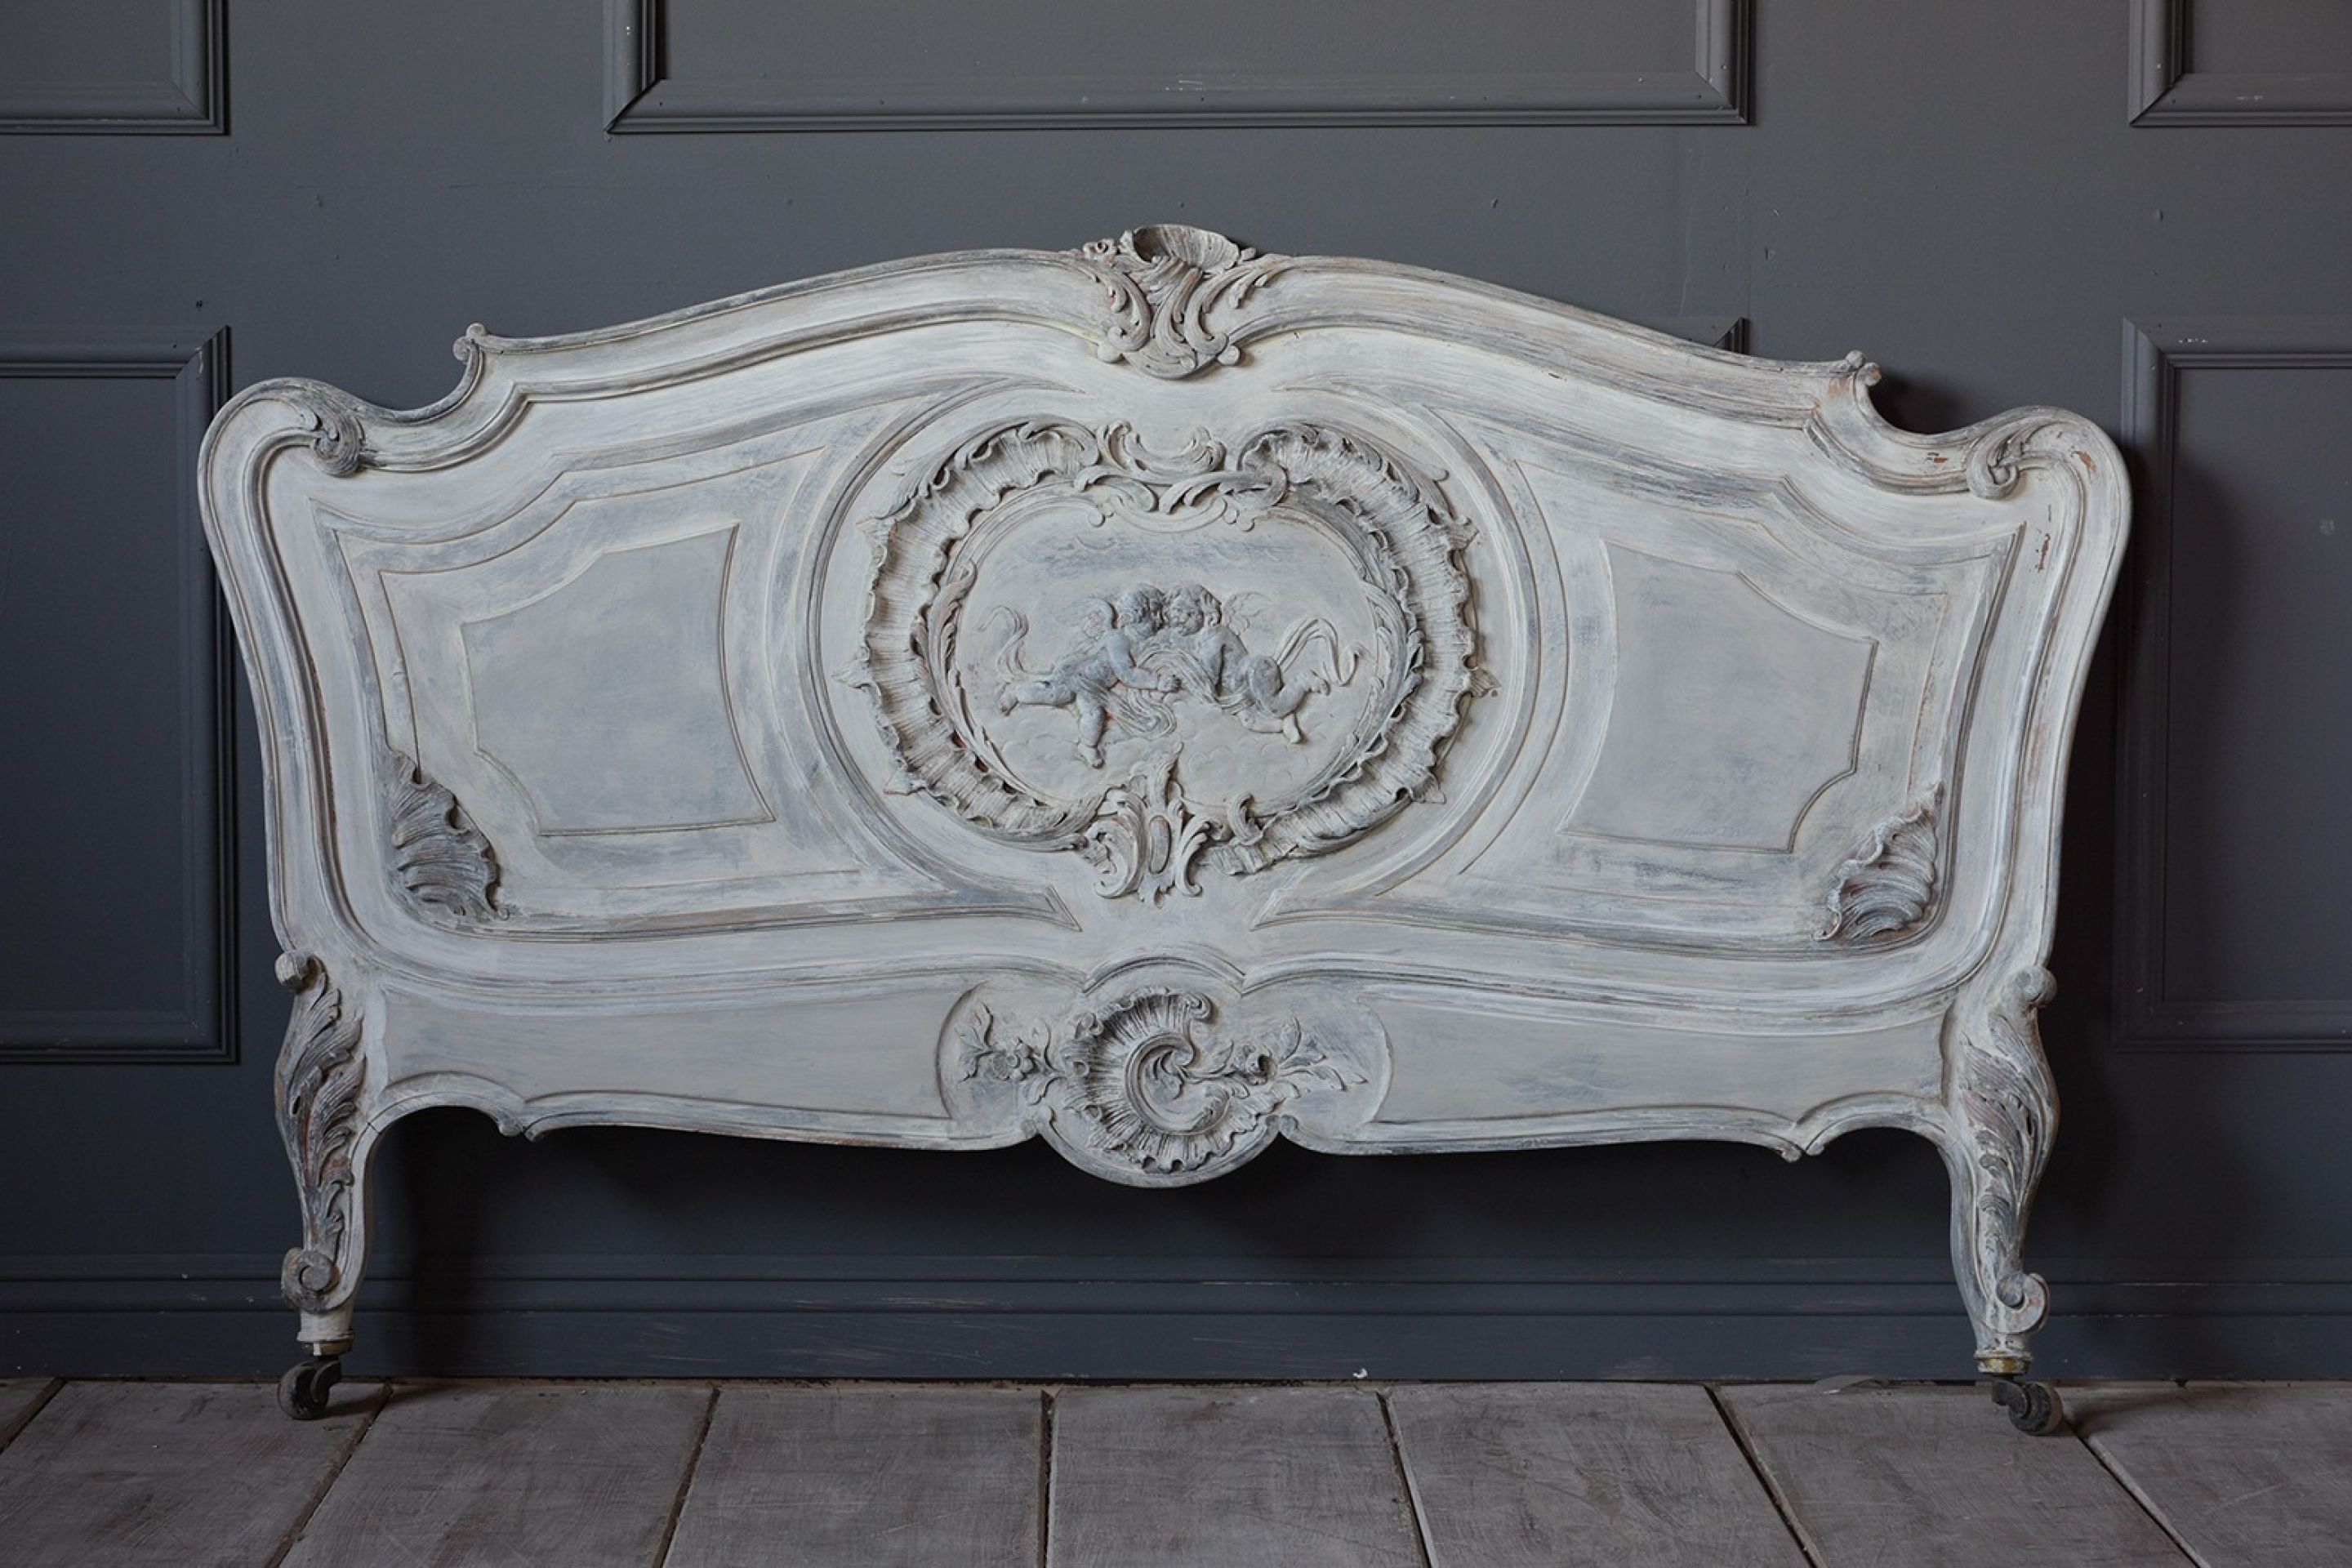 French 19th Century Louis XV Style Bed Frame